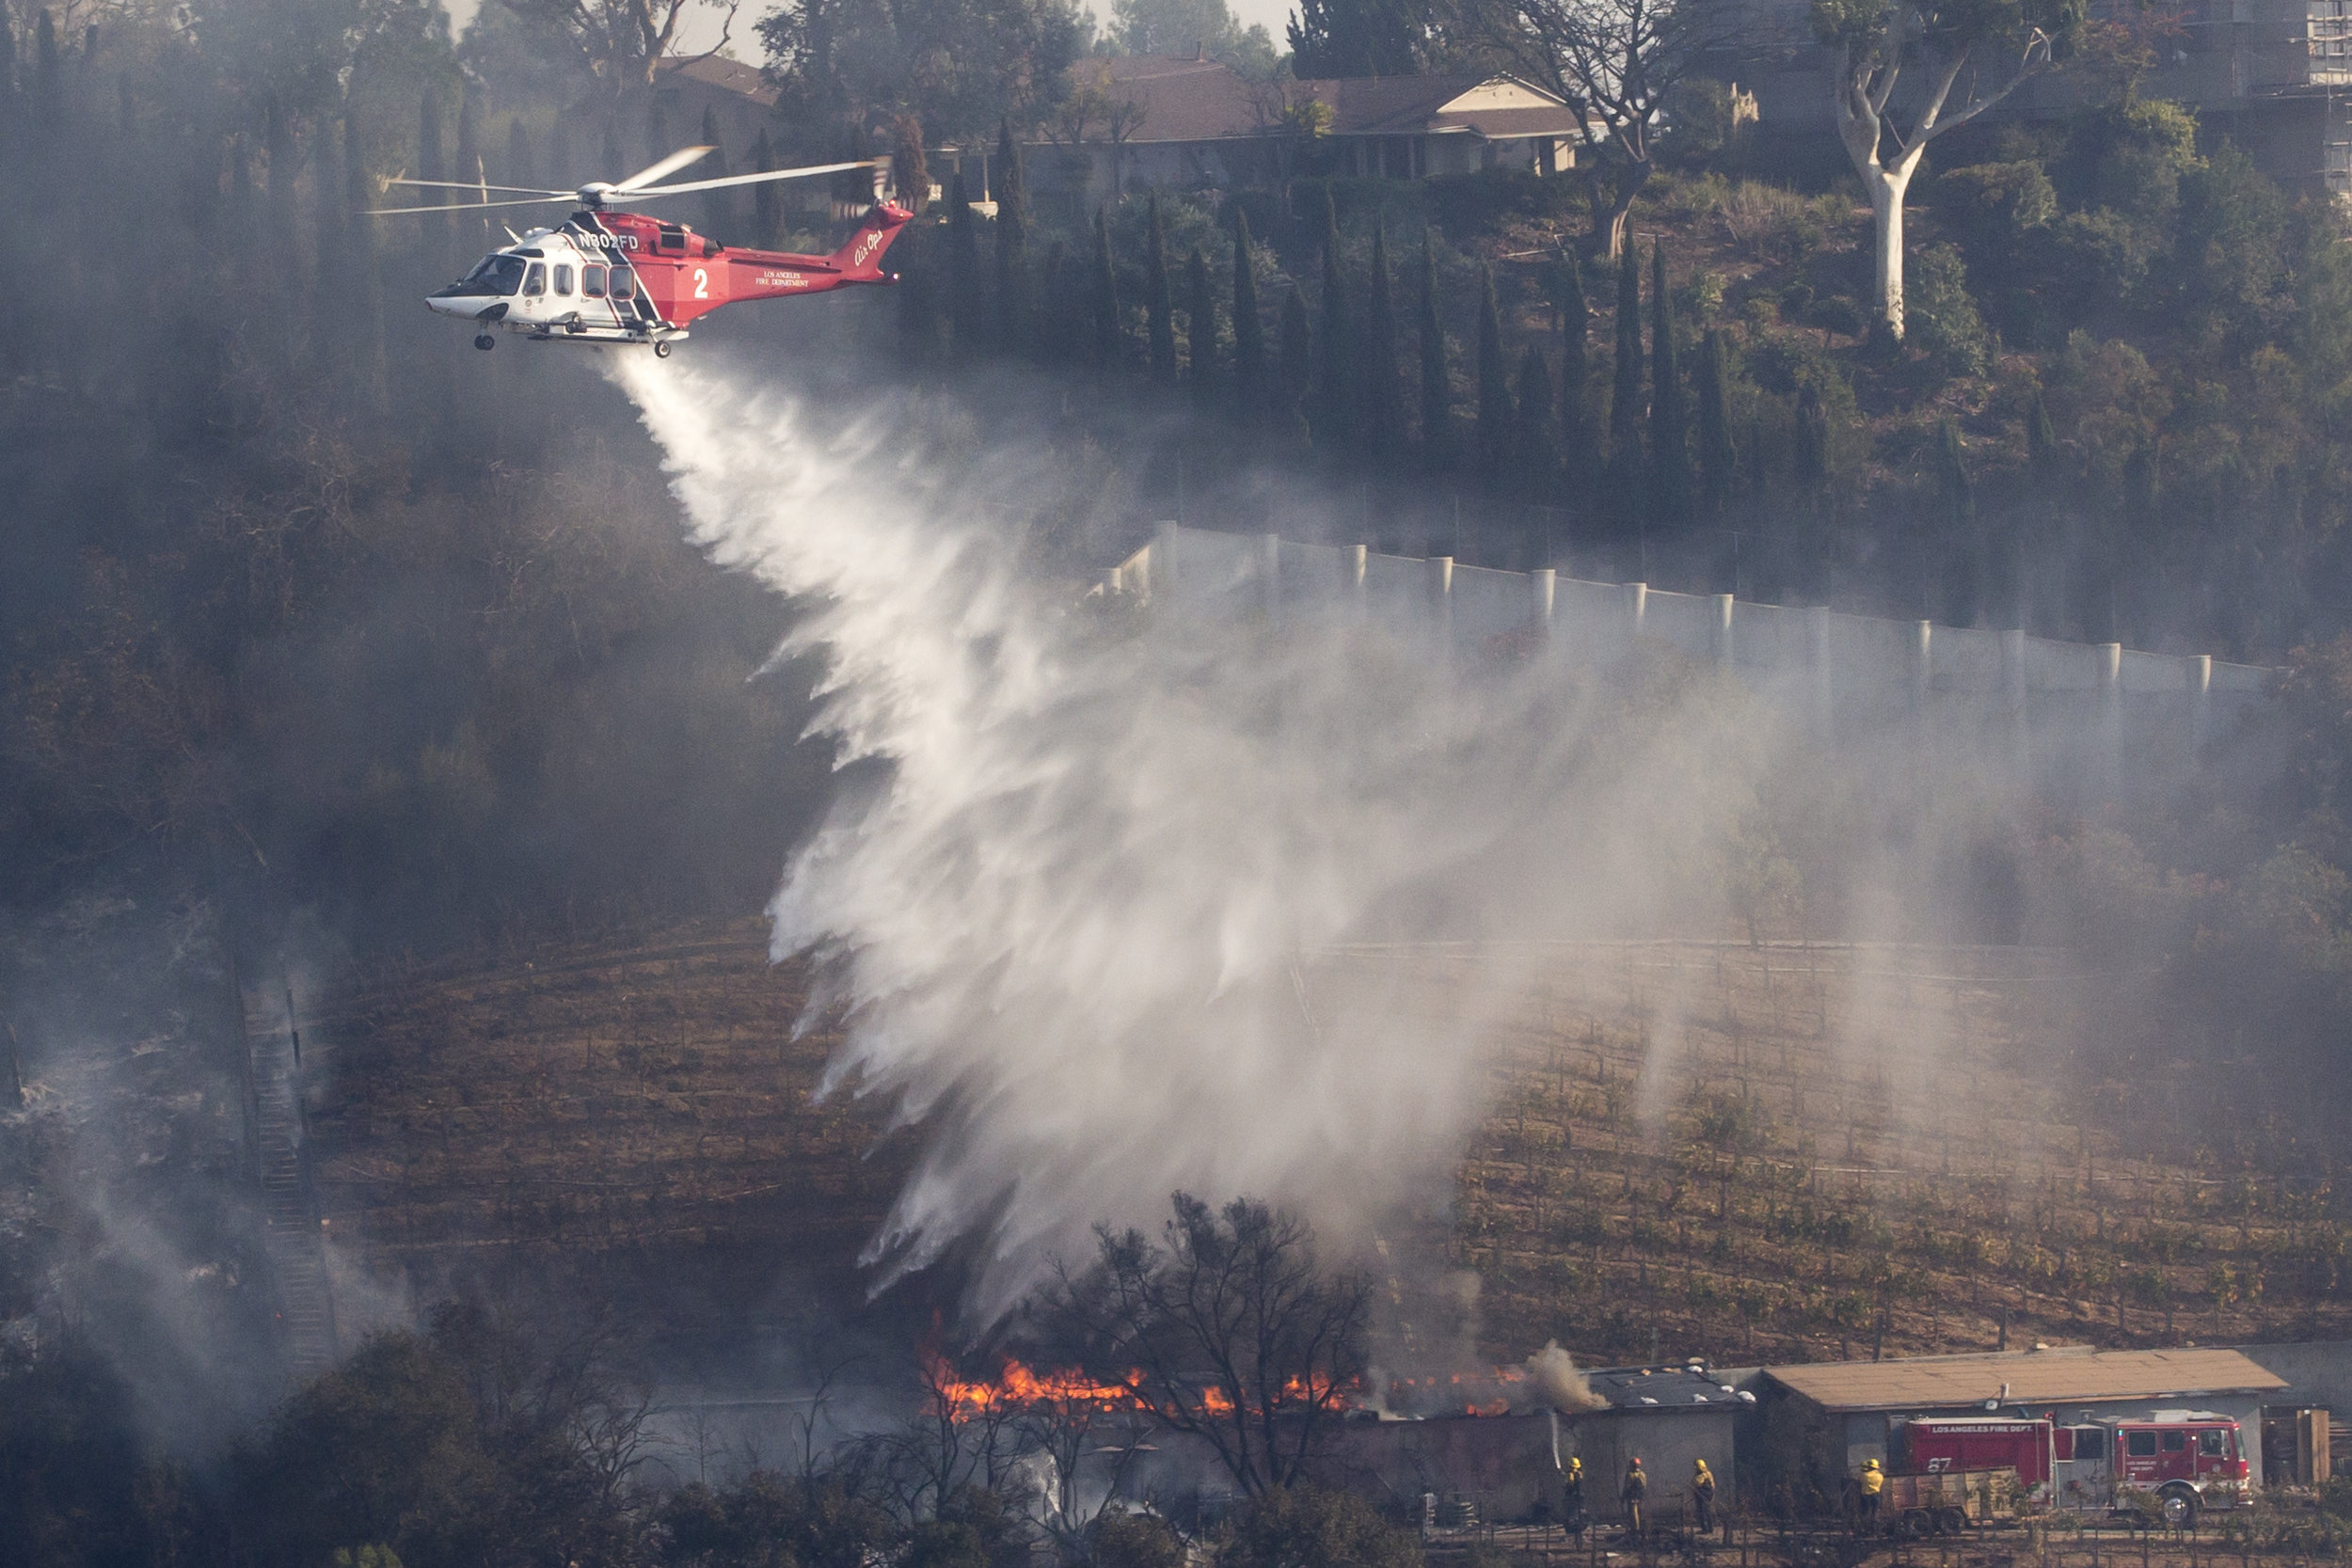 A Los Angeles County Fire helicopter makes a water drop on the Moraga Bel Air Vineyard,during the Skirball Fire as firefighters on the ground work to keep the fire away. On Wednesday, Dec.6, 2017 in the Bel-Air area of Los Angeles, Calif. (Jose Lopez)